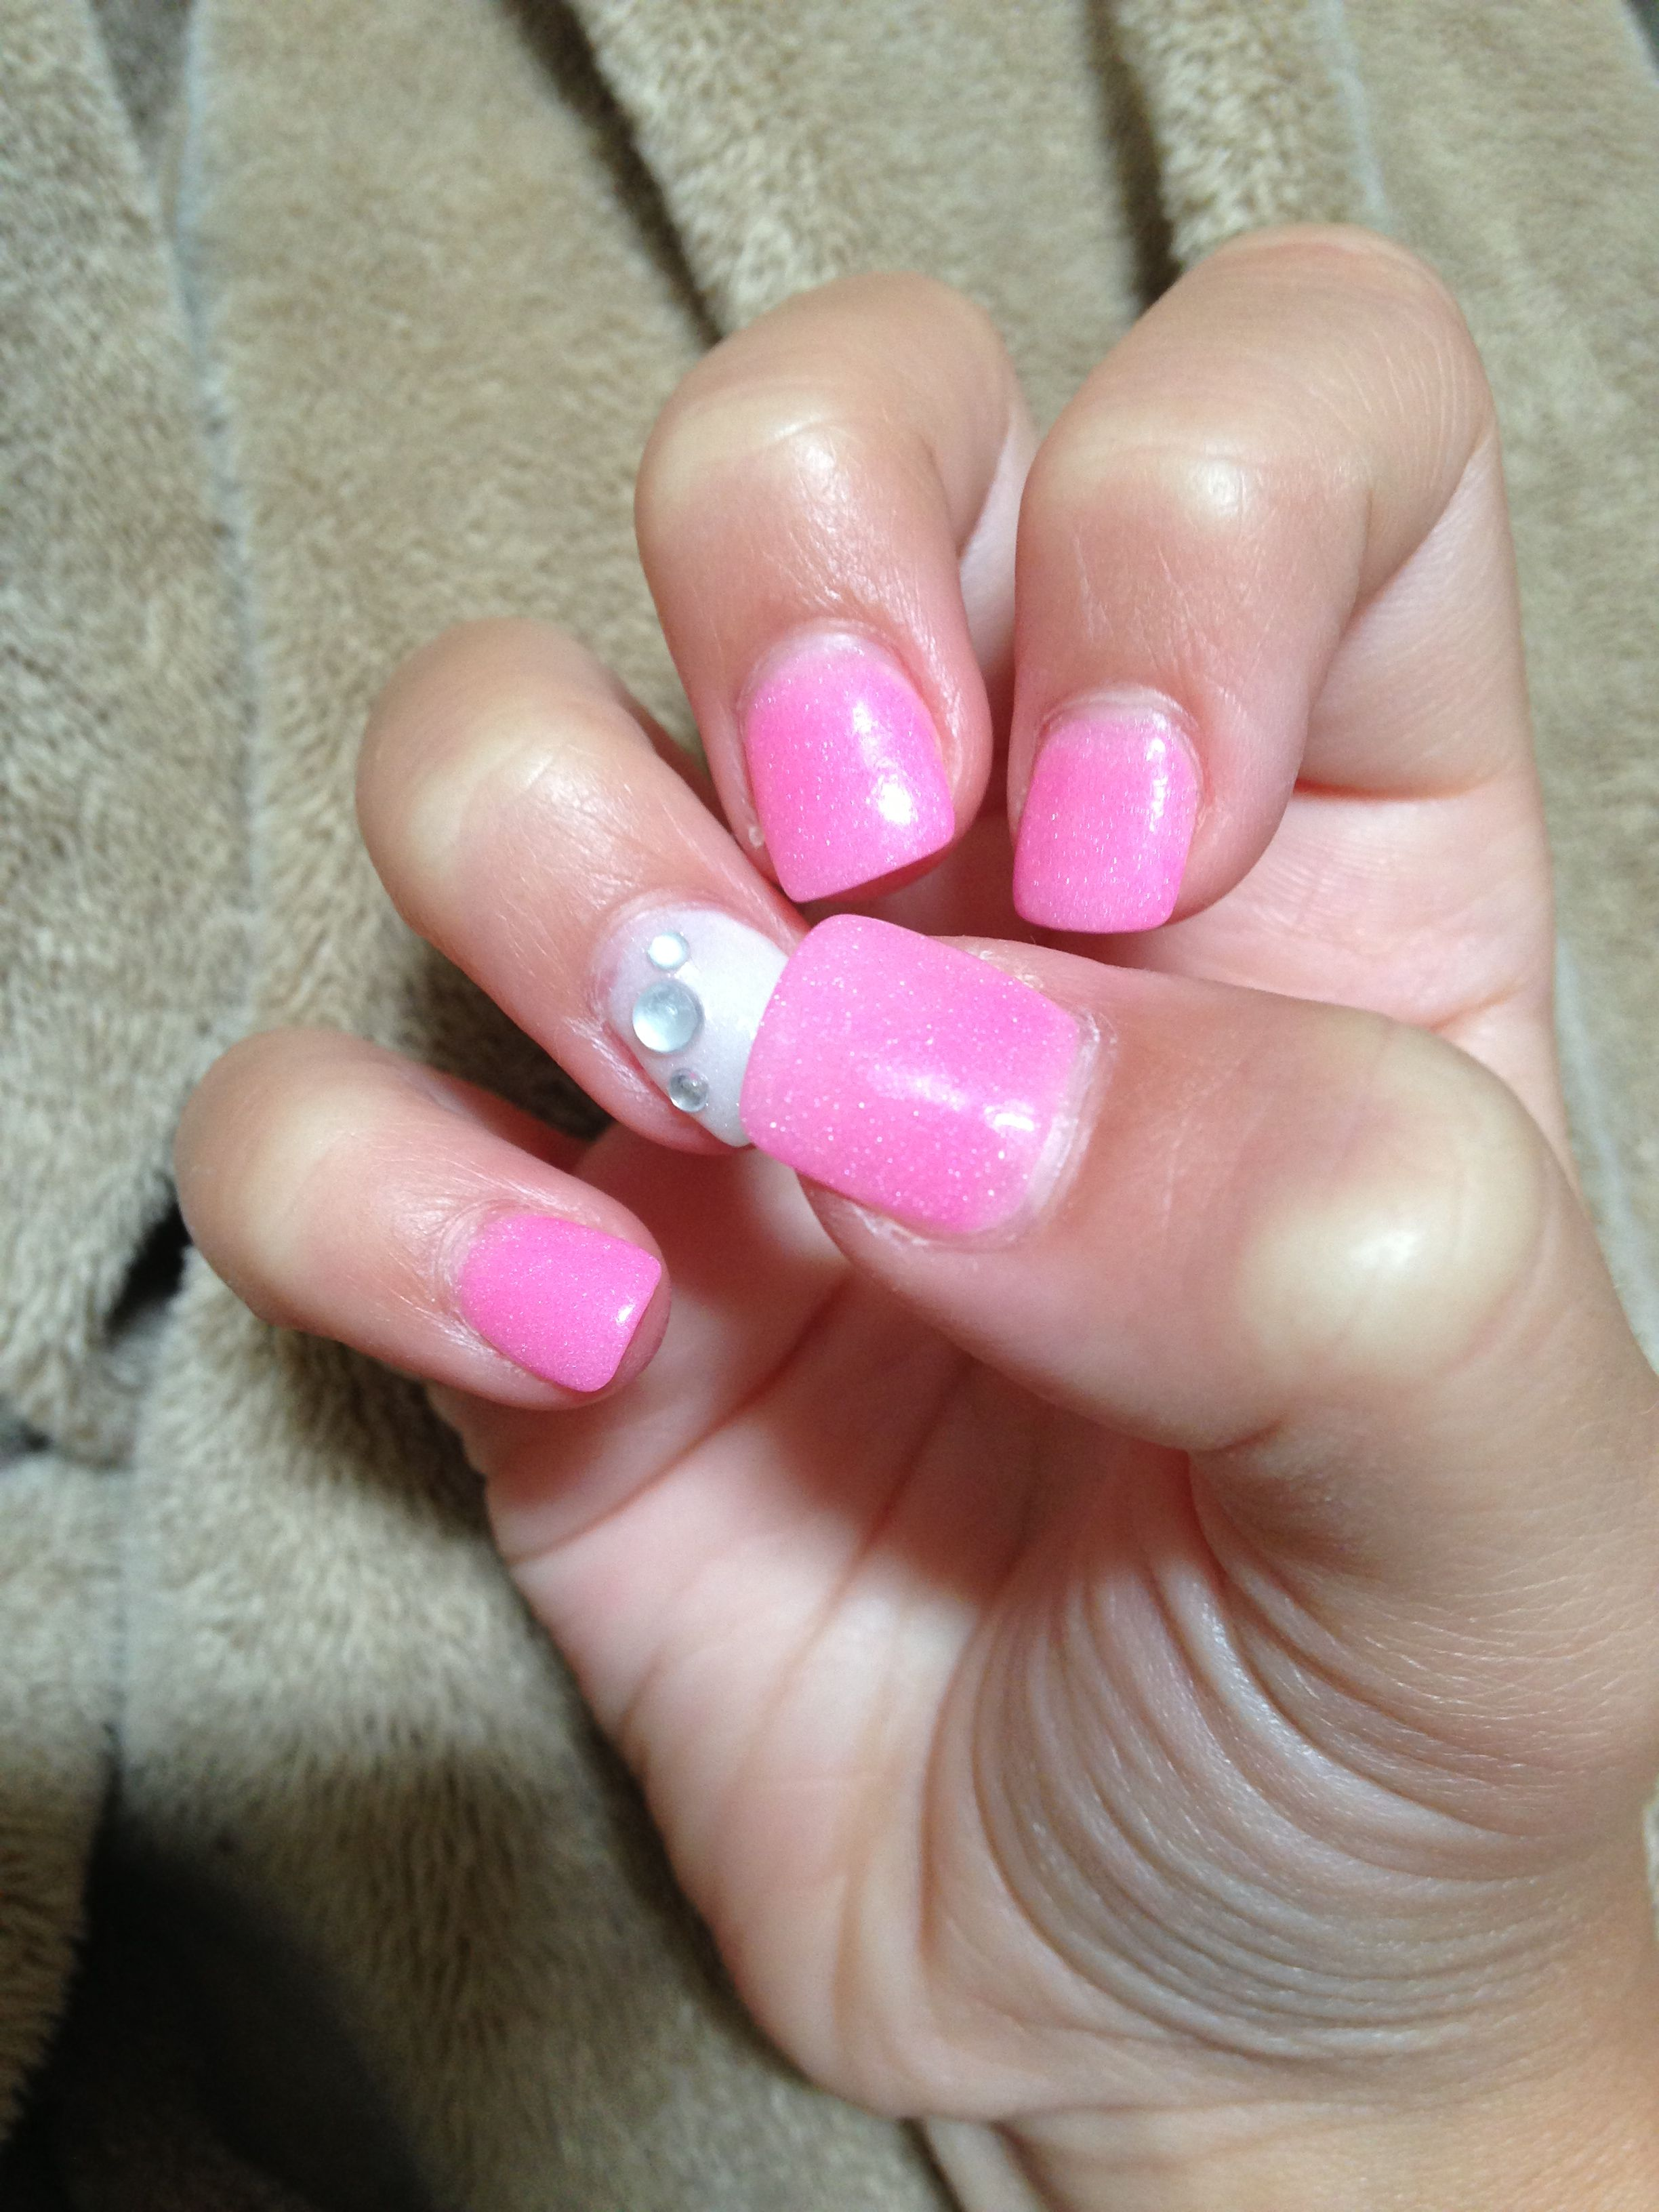 Nexgen nails!!!!they r so fun to do if acrylic nails r to thick for ...